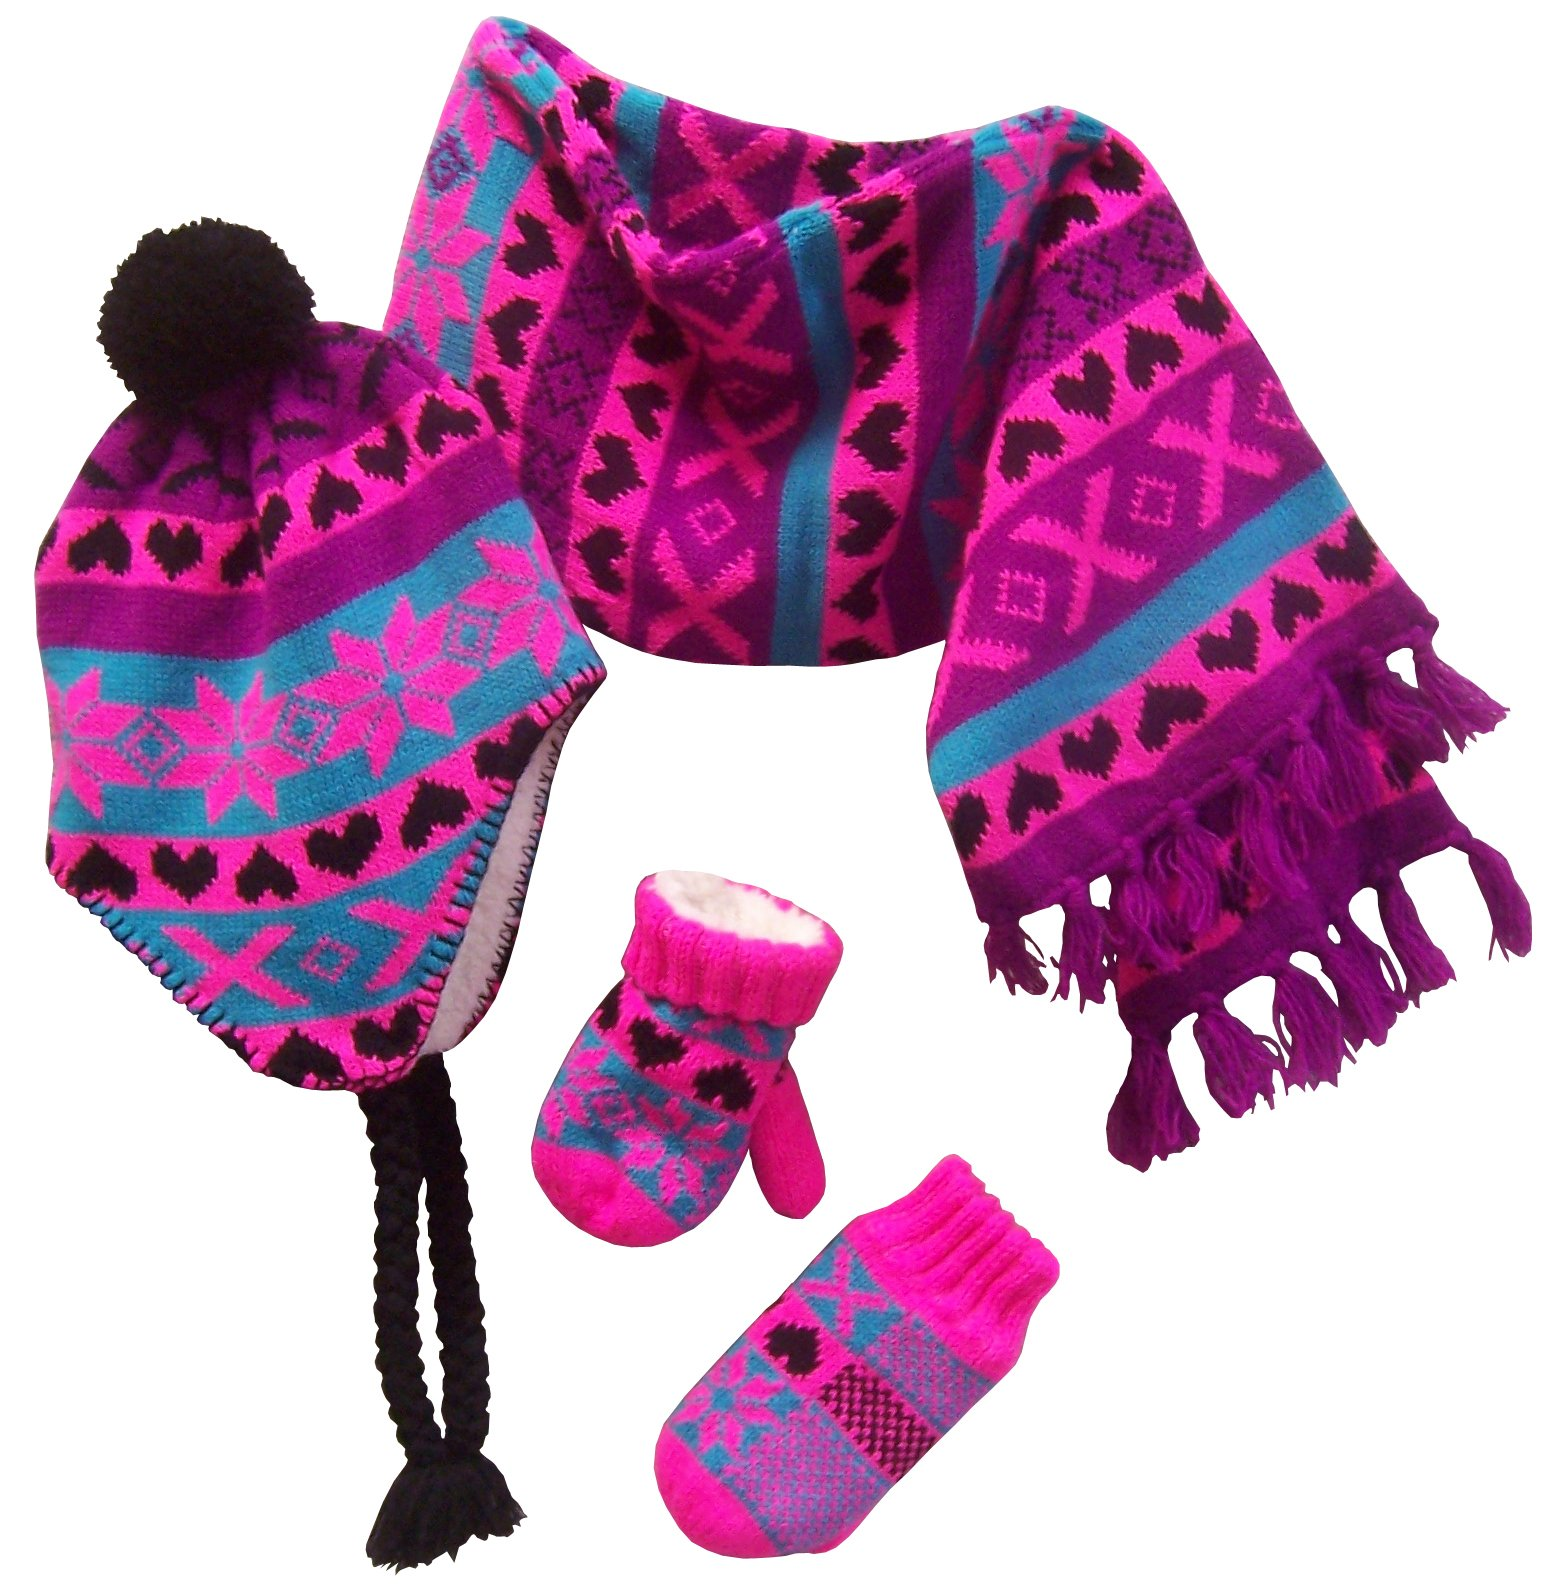 NICE CAPS Little Girls and Infants Sherpa Lined Snowflake Design Knitted Hat Mitten Scarf Cold Weather Winter Accessory Set - Fits Baby Toddler Kids Childrens Sizes